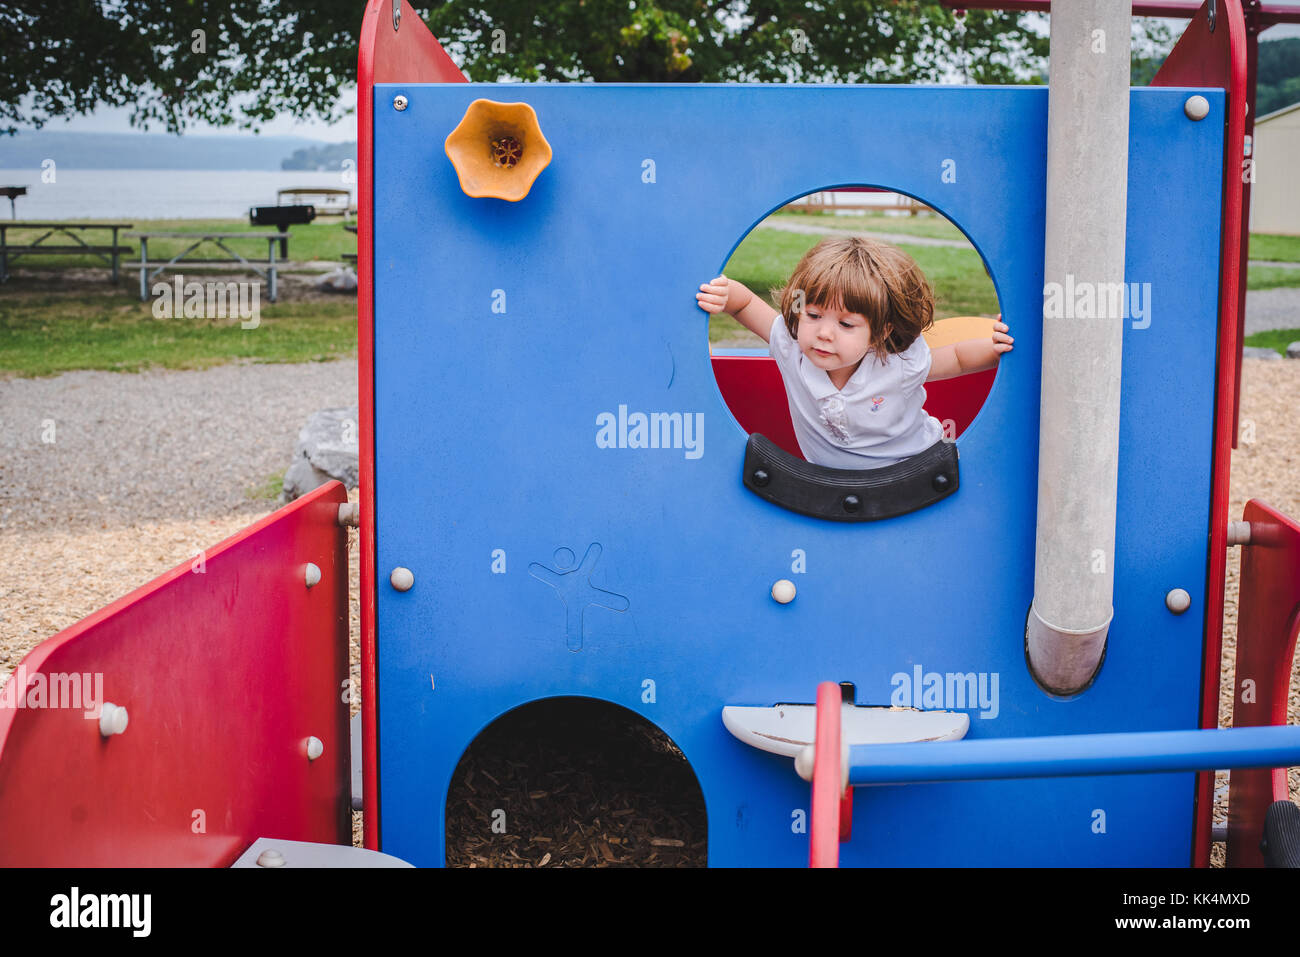 A little girl climbs on playground equipment on summer day - Stock Image